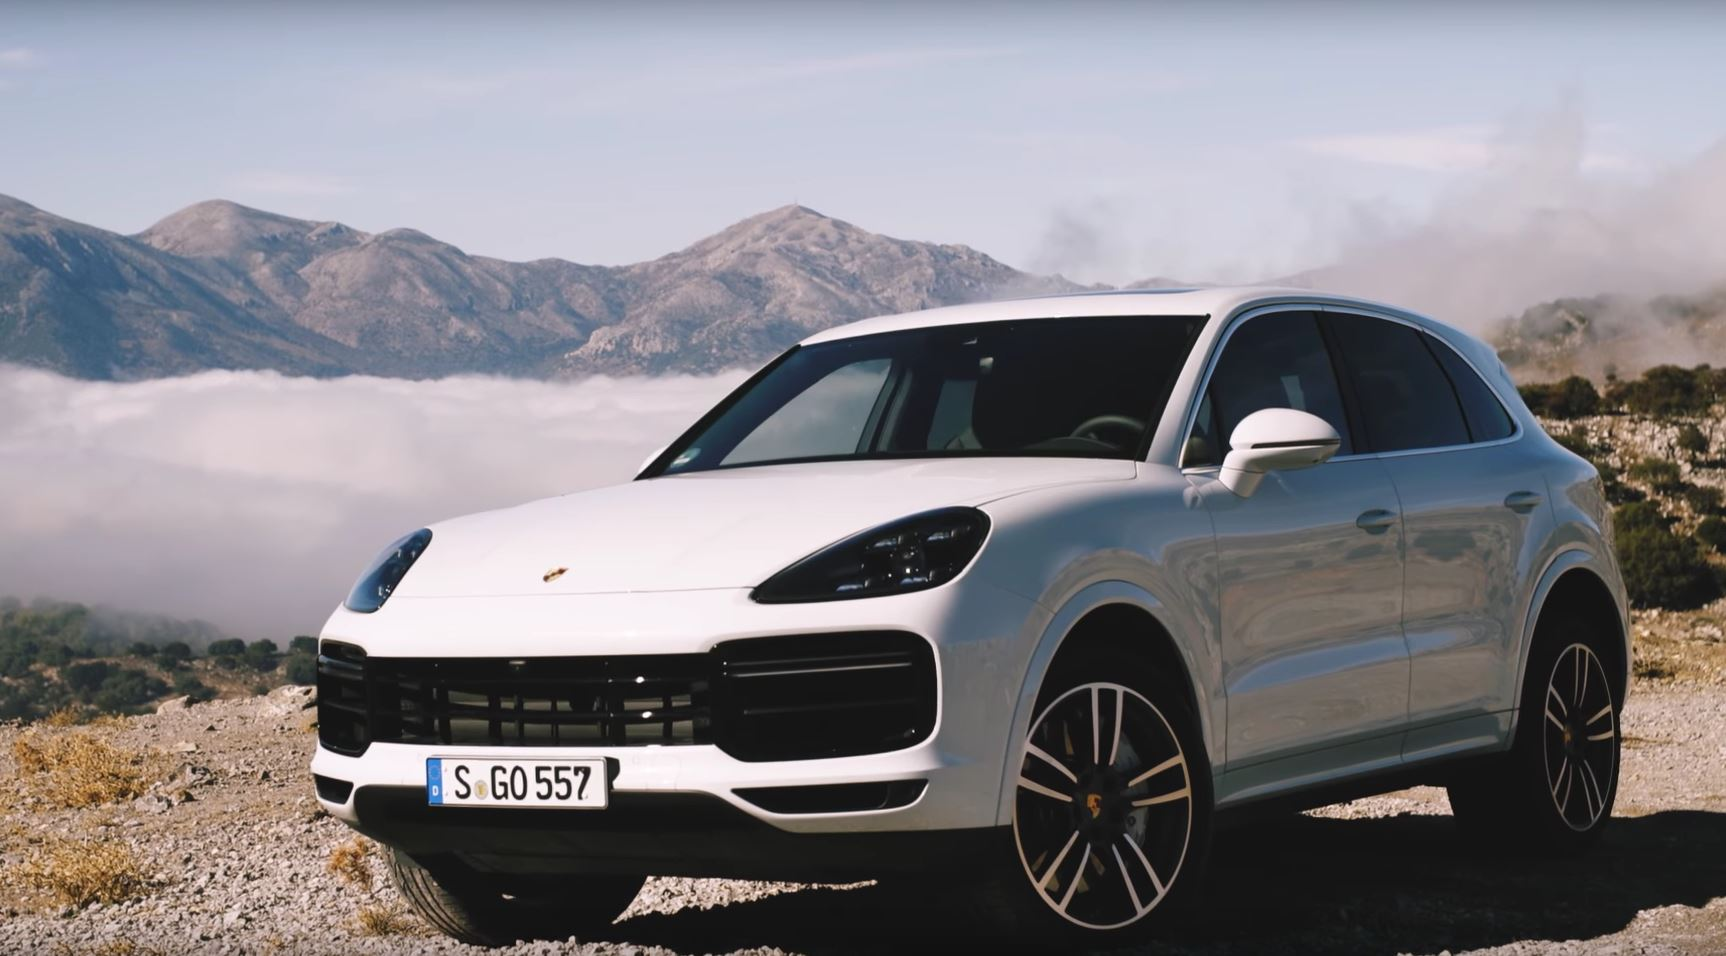 2019 porsche cayenne turbo review says almost everything is better